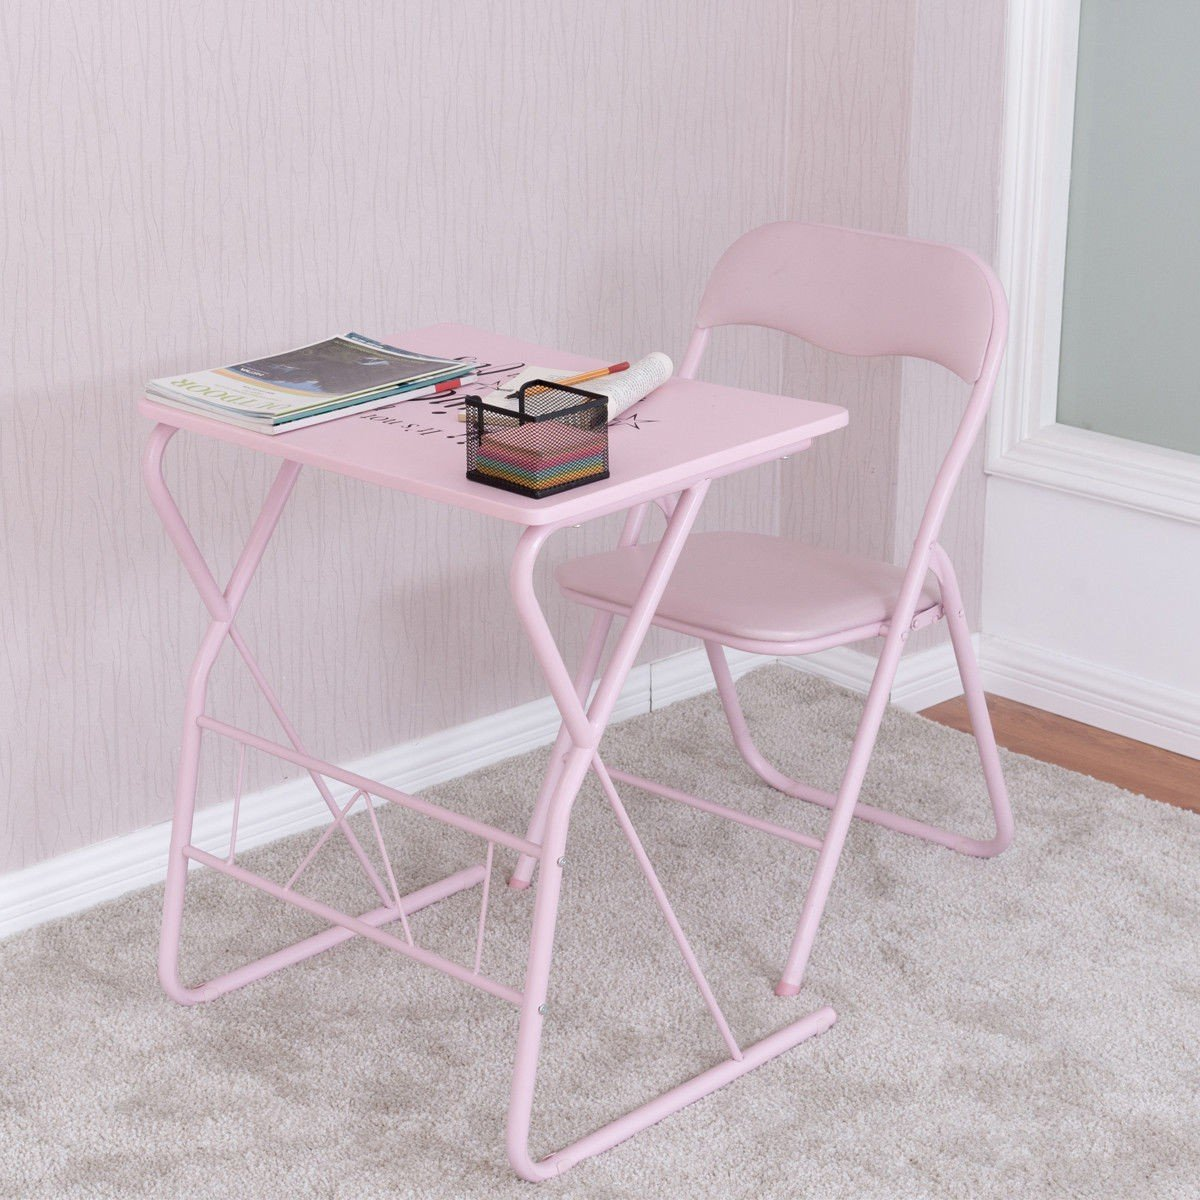 Student Folding Study Writing Chair Table Set By Choice